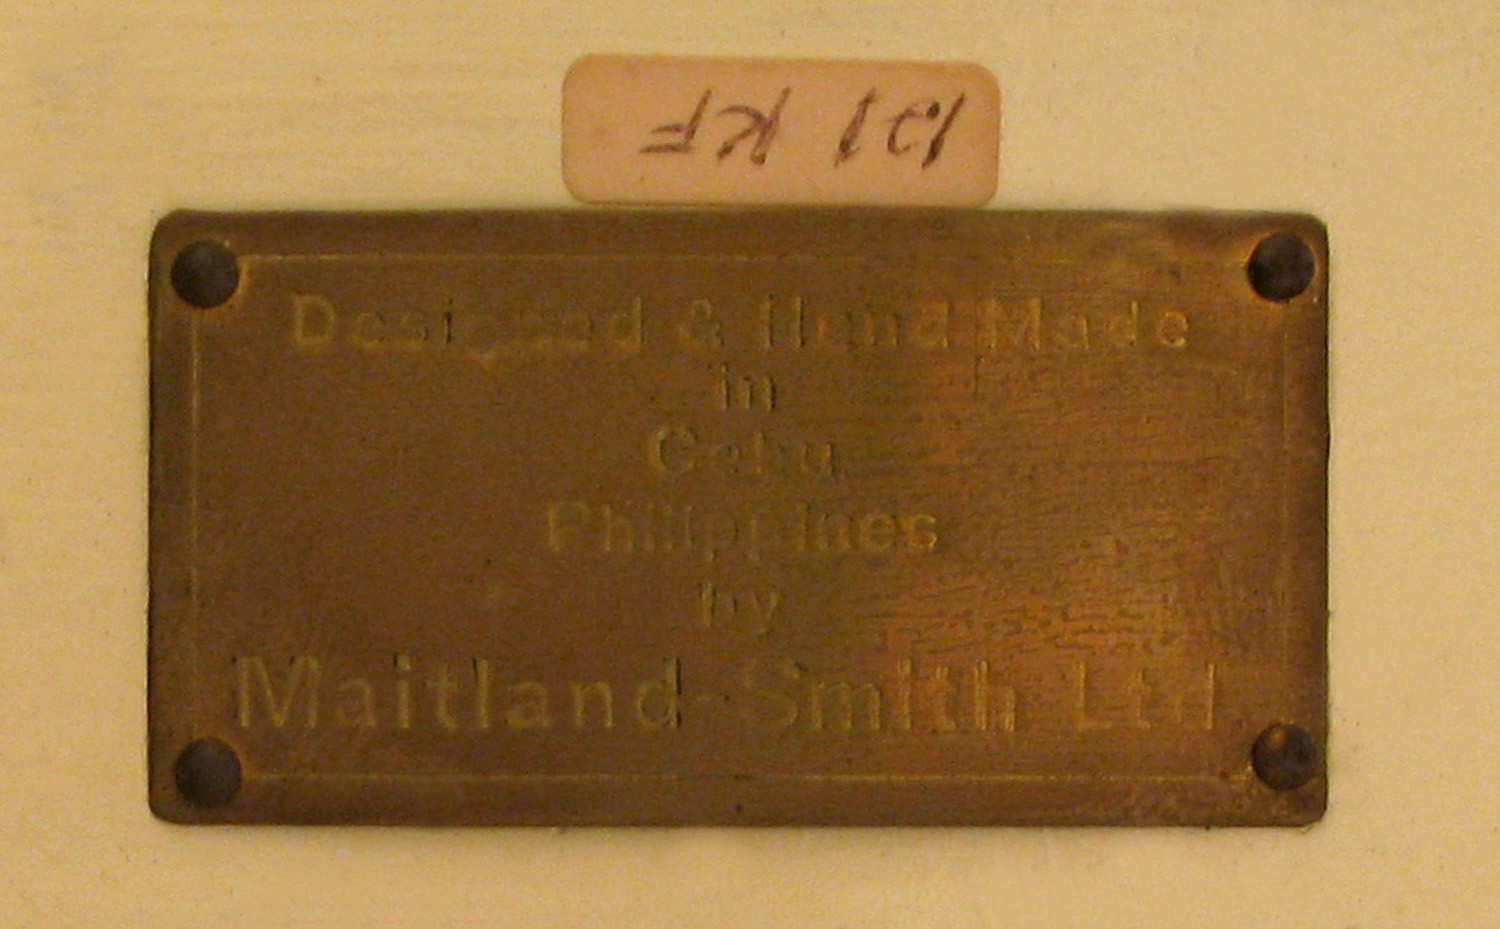 Maitland Smith 75 tes stone with bow coffeetable214 label detail hires.jpg